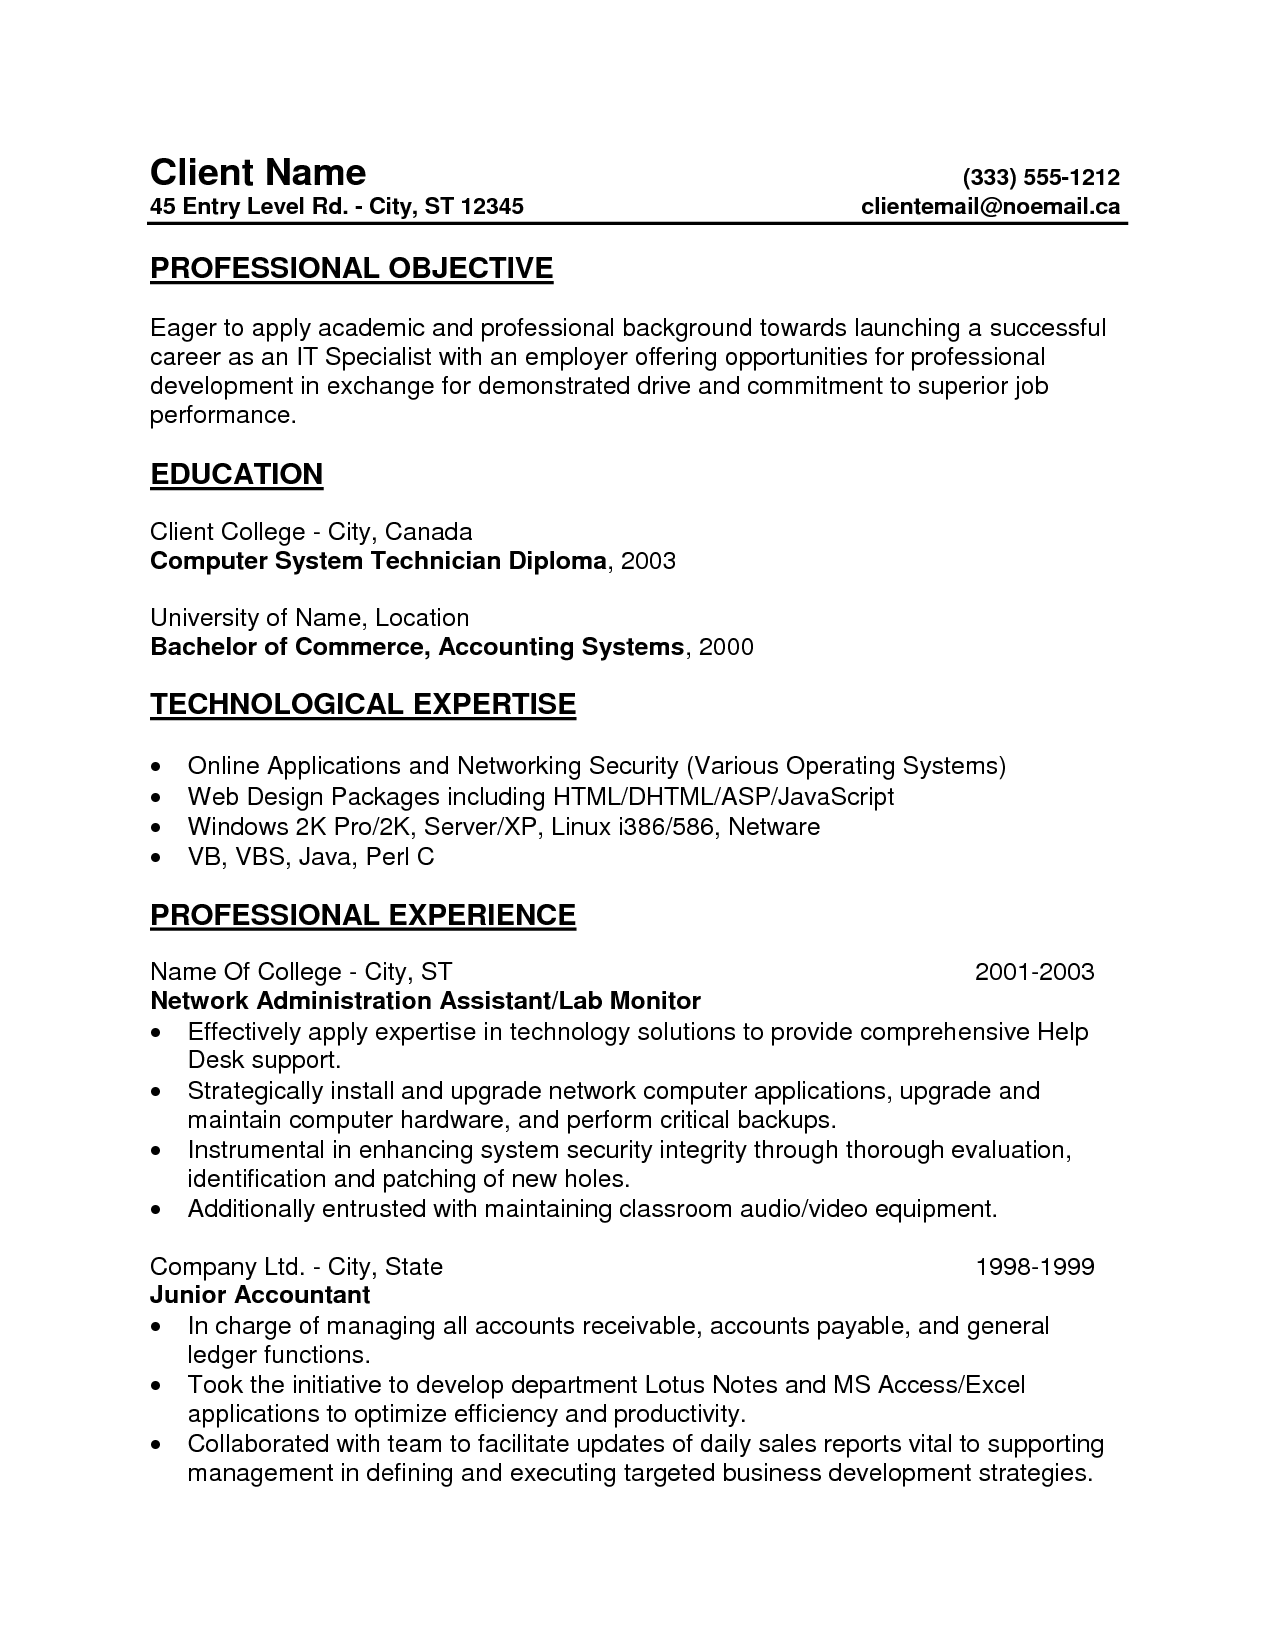 entry level resume professional objective and professional experience. Resume Example. Resume CV Cover Letter